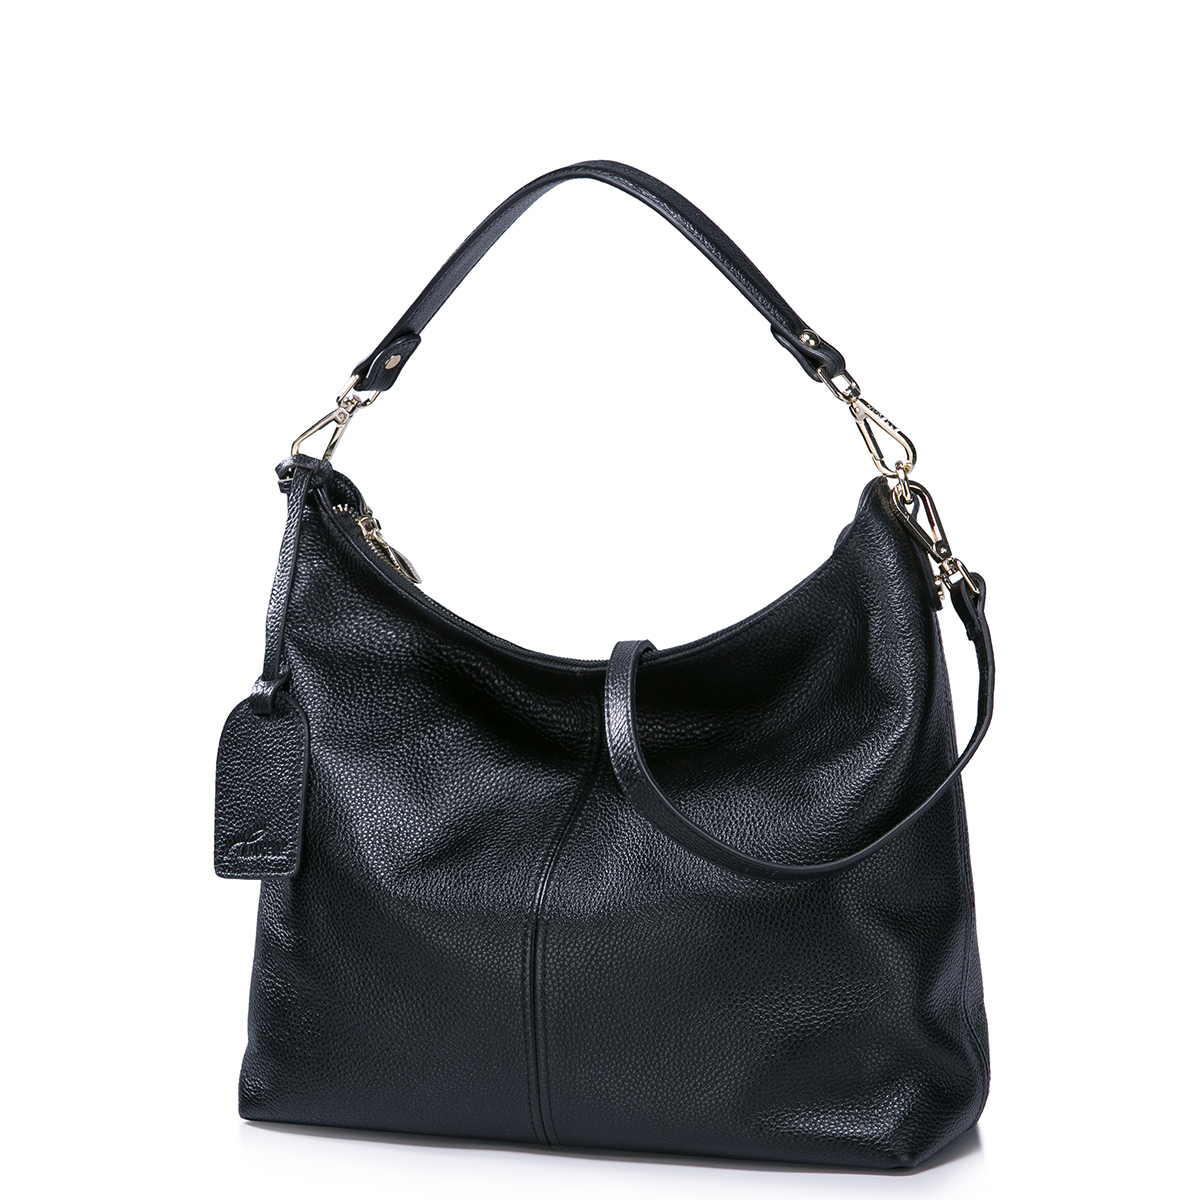 NUCELLE genuine leather bag black